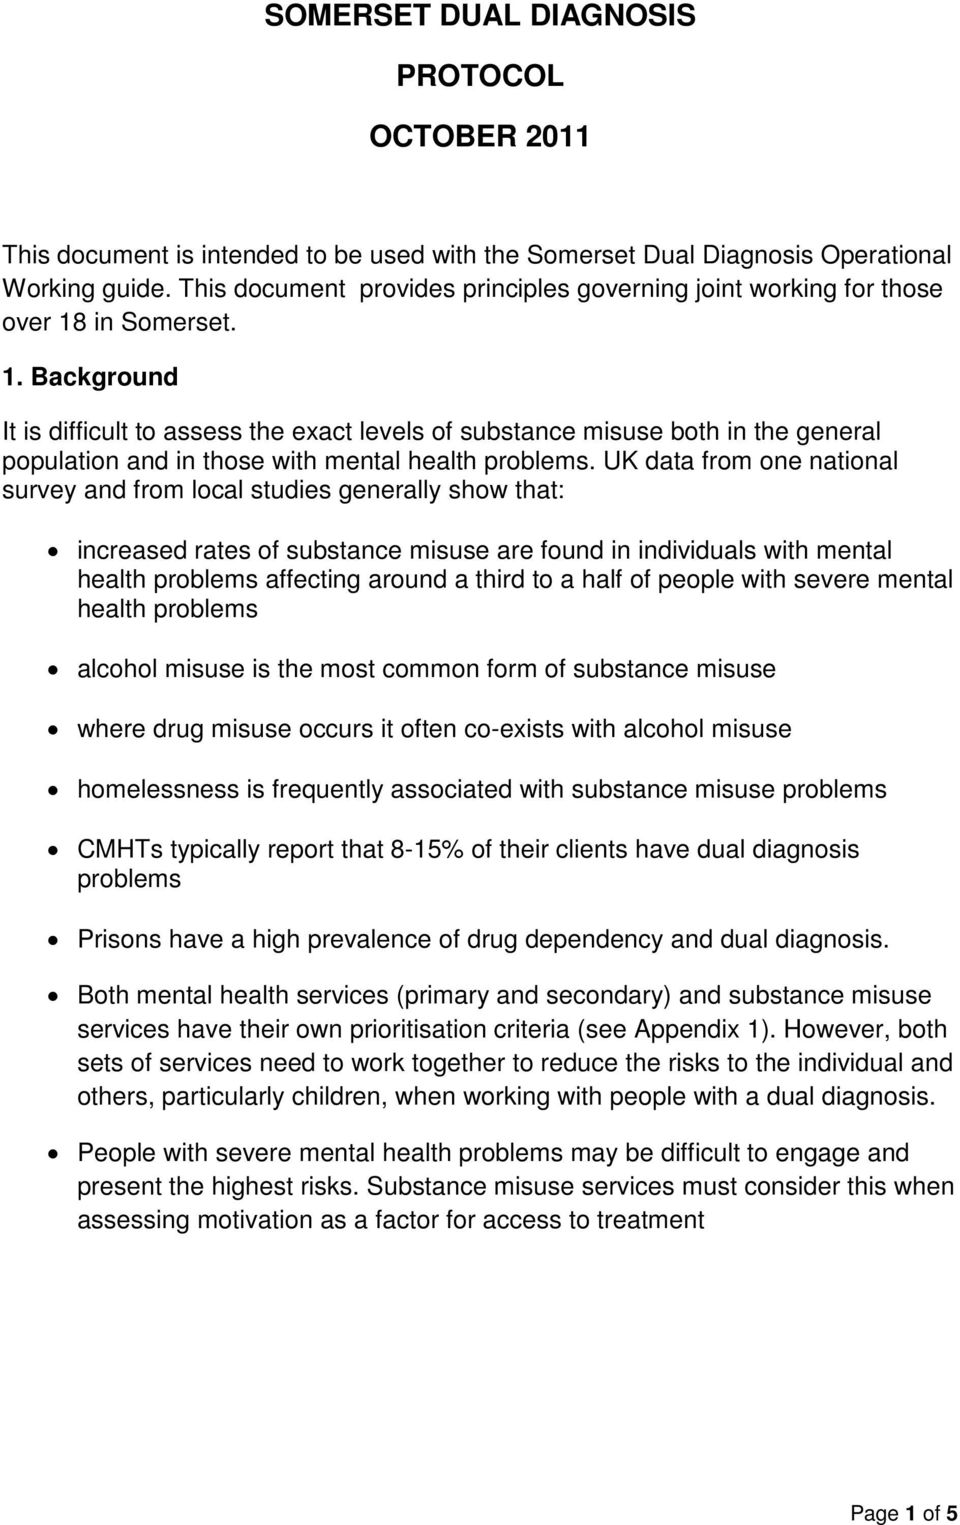 in Somerset. 1. Background It is difficult to assess the exact levels of substance misuse both in the general population and in those with mental health problems.